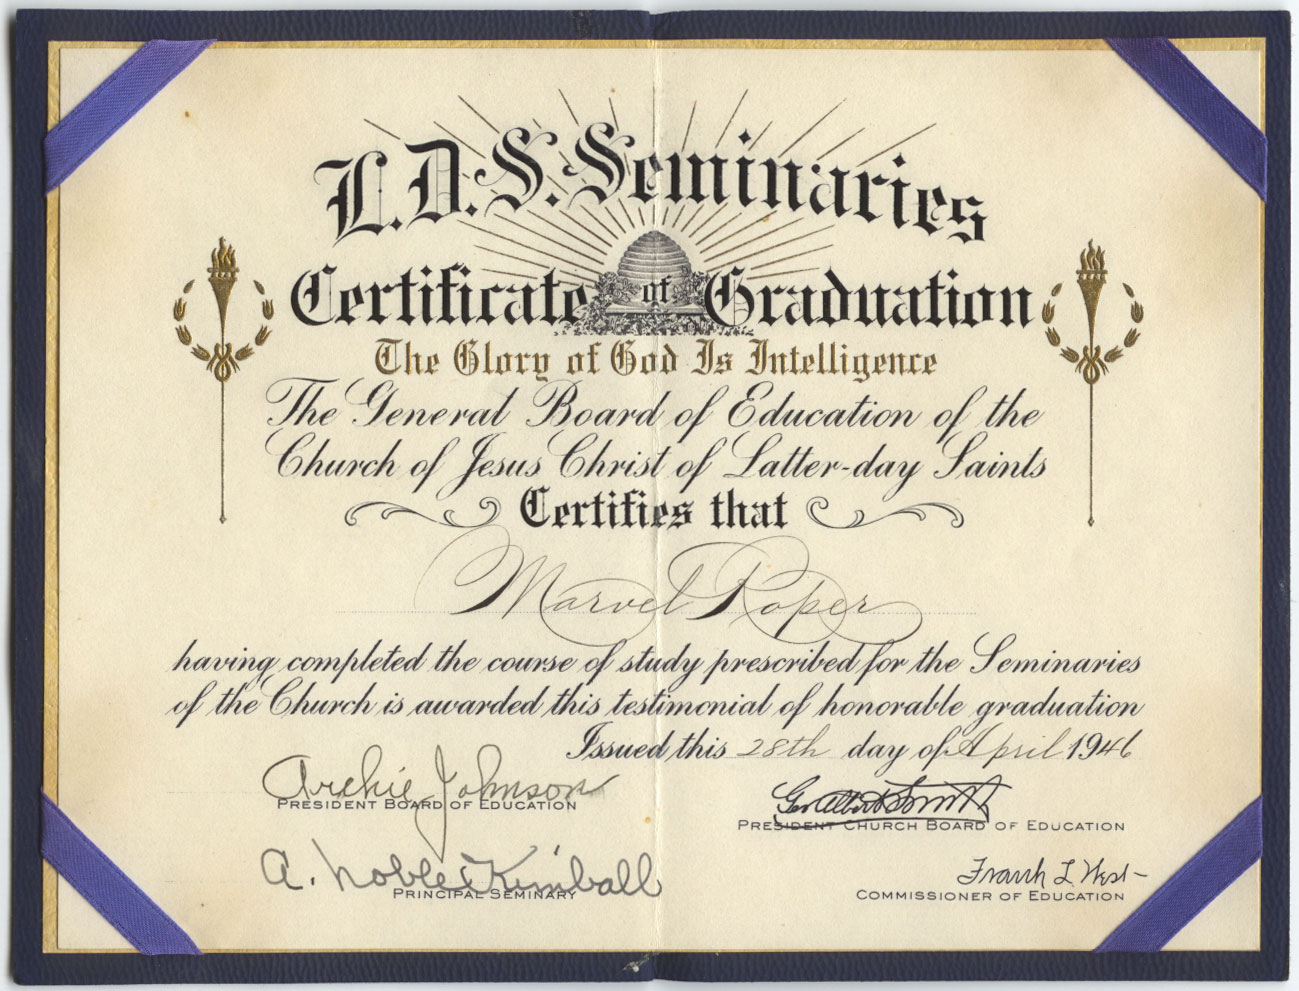 Seminary certificate of graduation family preserves certificate of graduation the glory of god is intelligence the general board of education of the church of jesus christ of latter day saints certifies that xflitez Images